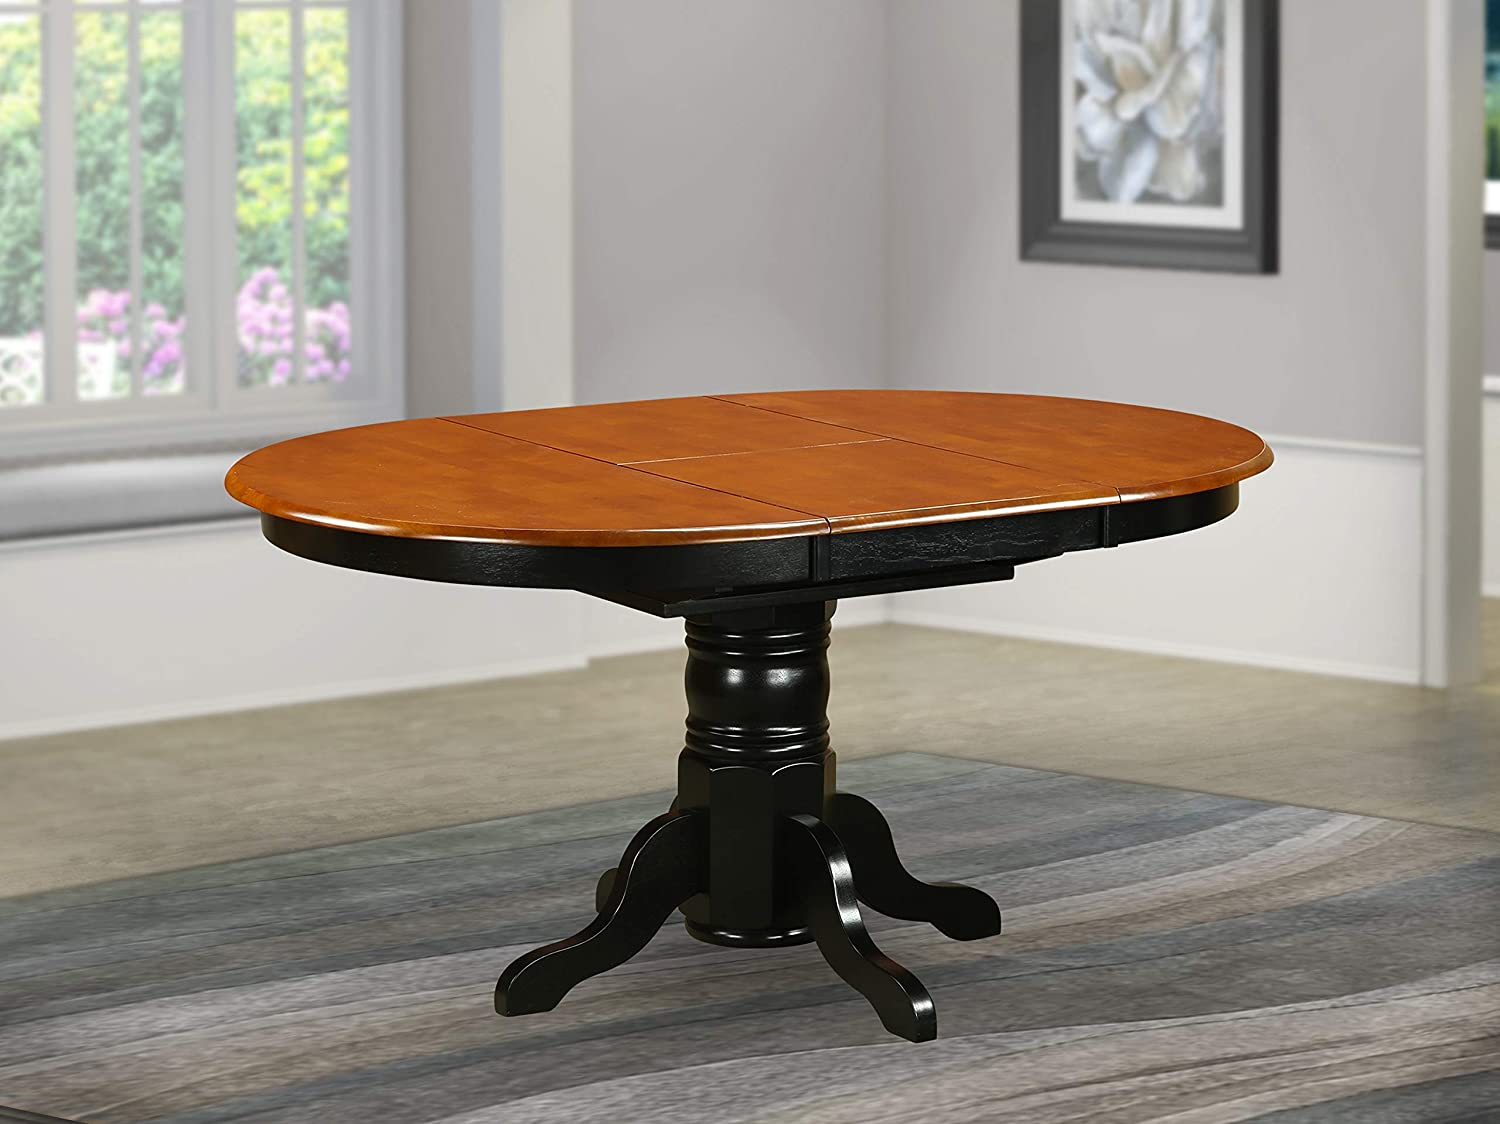 East West Furniture Butterfly leaf Oval Table   Cherry Table Top Surface  and Black Finish Pedestal Legs Hardwood Frame Kitchen Table